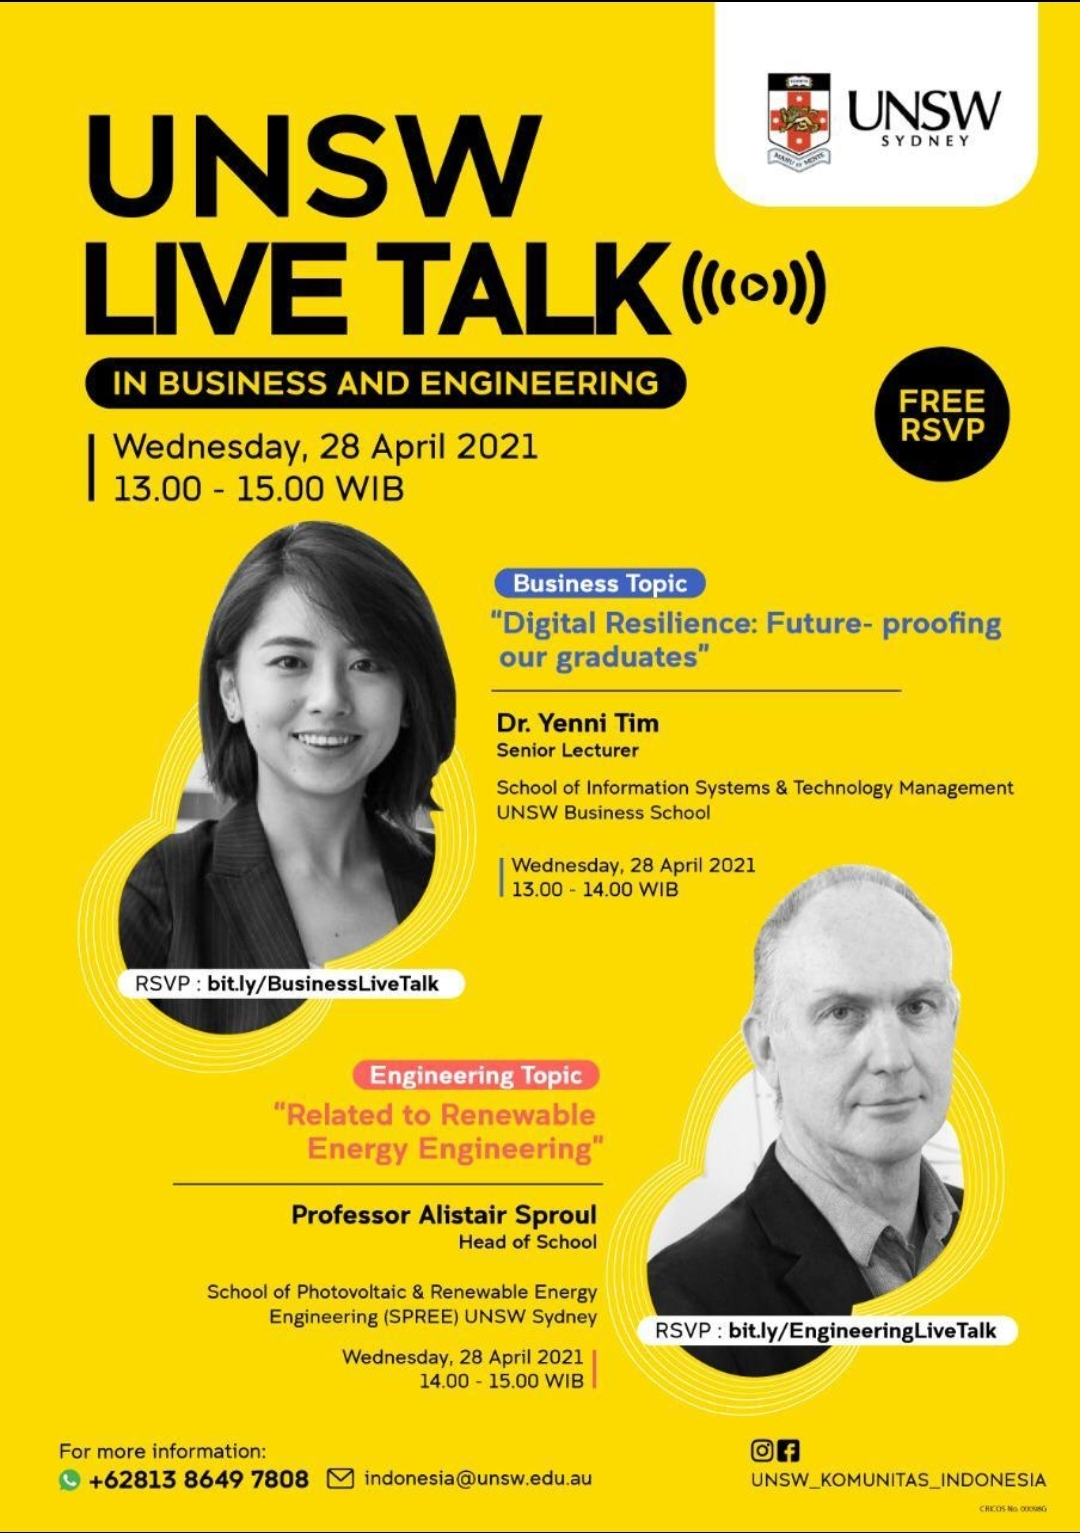 UNSW Live Talk in Business and Engineering (28 April 2021)